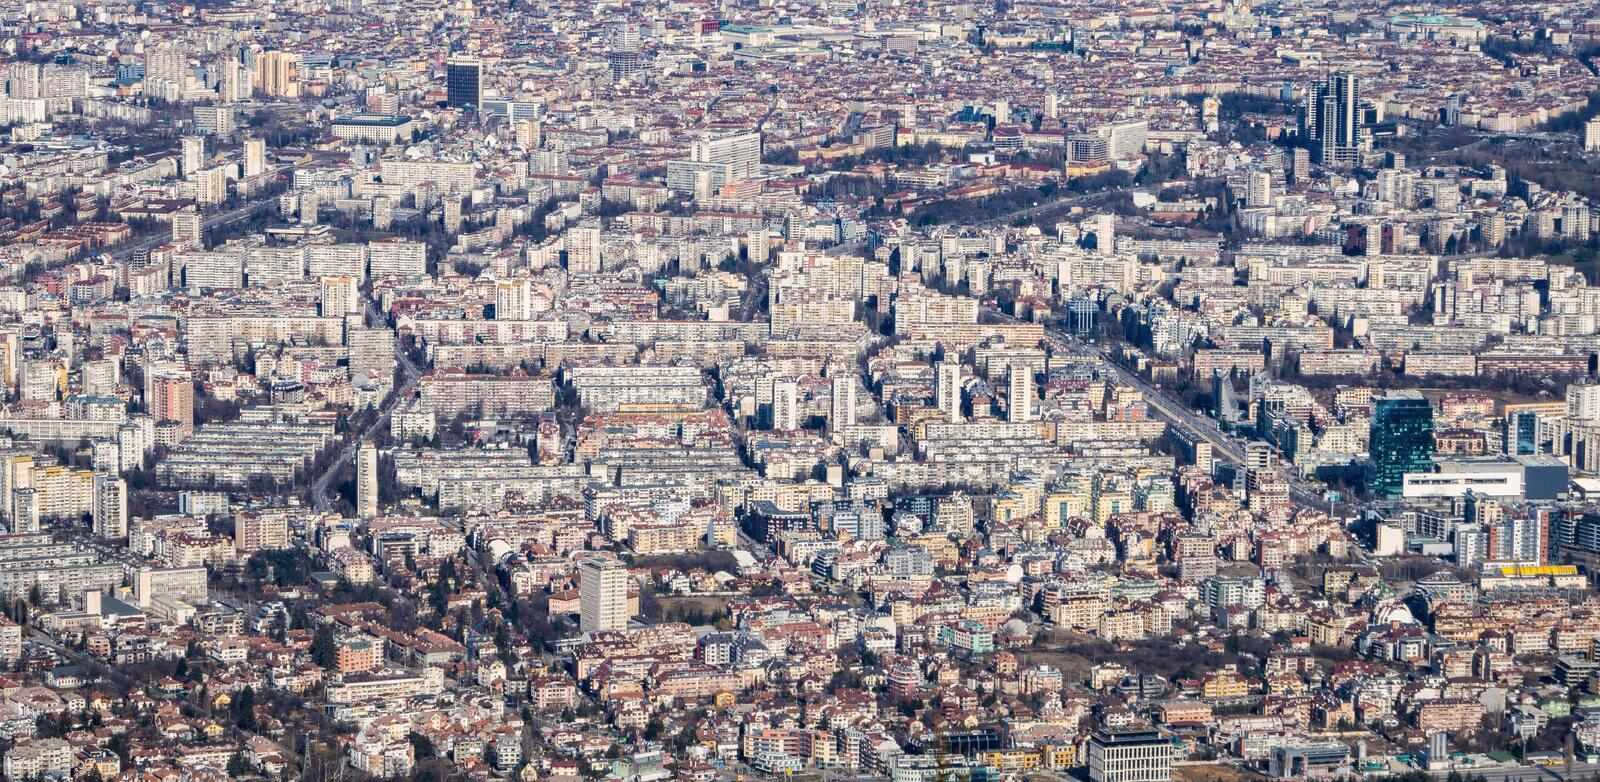 Aerial Photo Of High Rise Buildings During Daytime Free Public Domain Cc0 Image